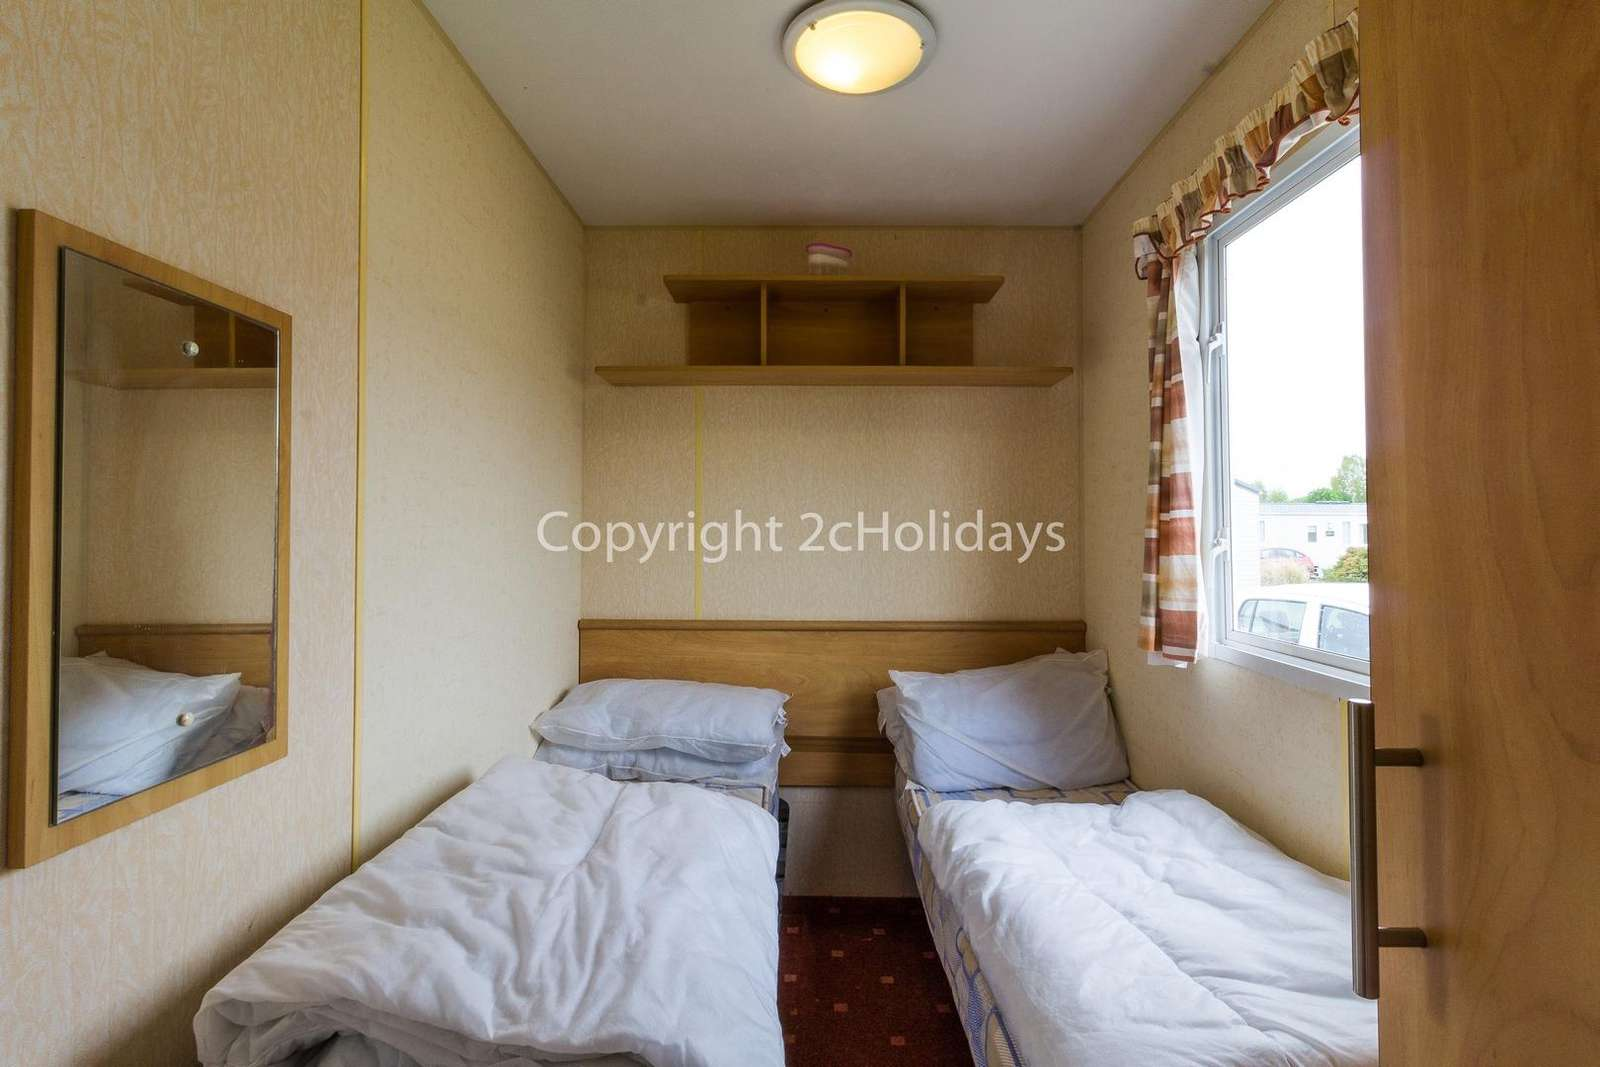 Cosy twin bedroom with an electric heater